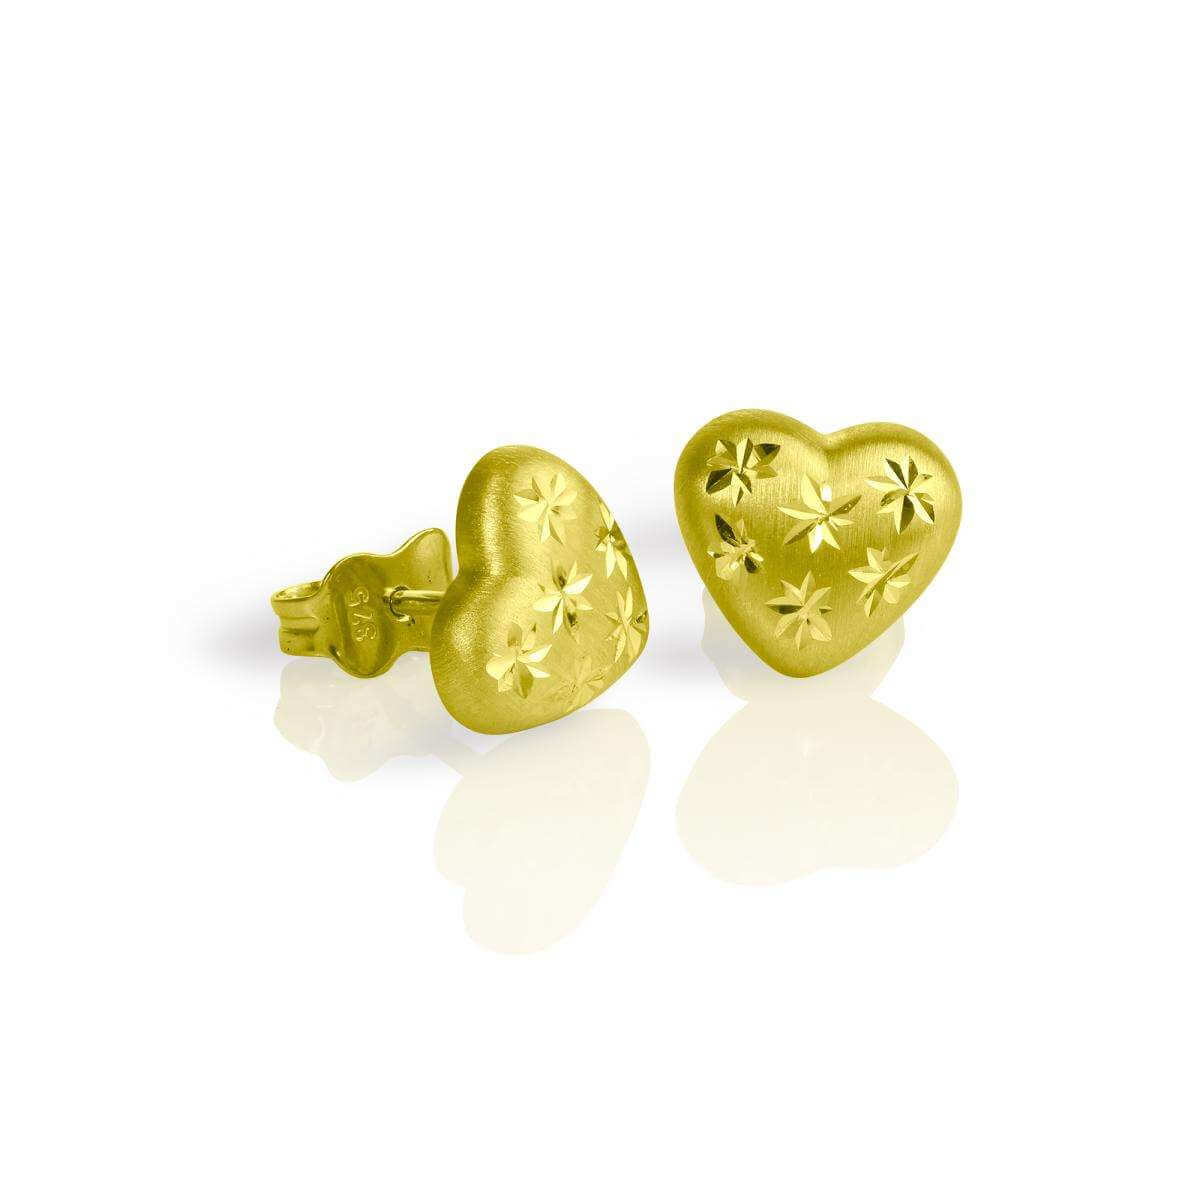 9ct Gold Diamond Cut Kisses Heart Stud Earrings